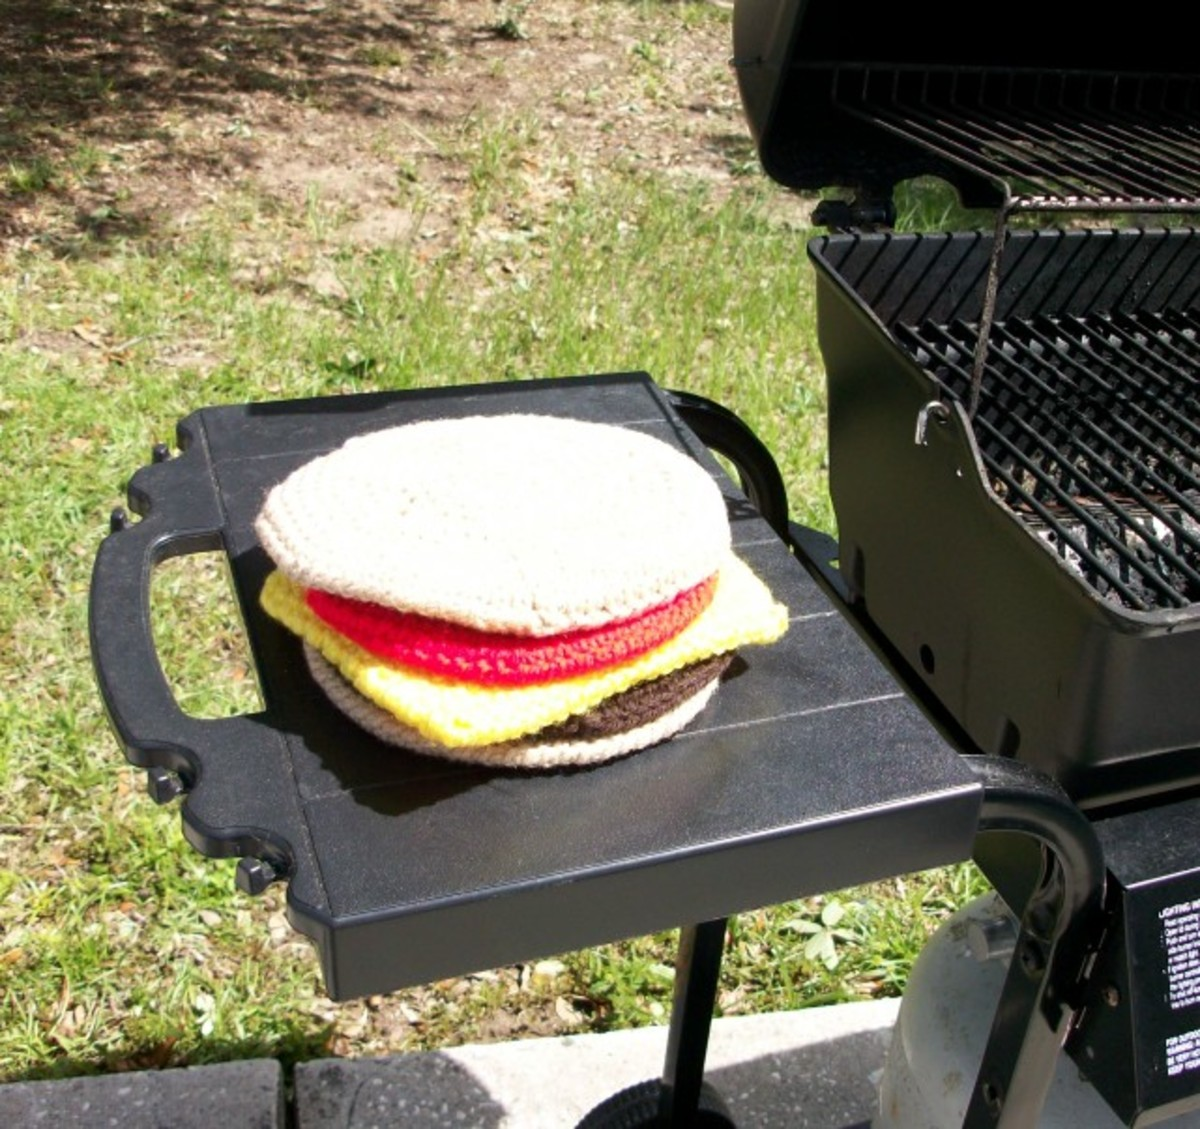 Crocheted Cheeseburger Potholder